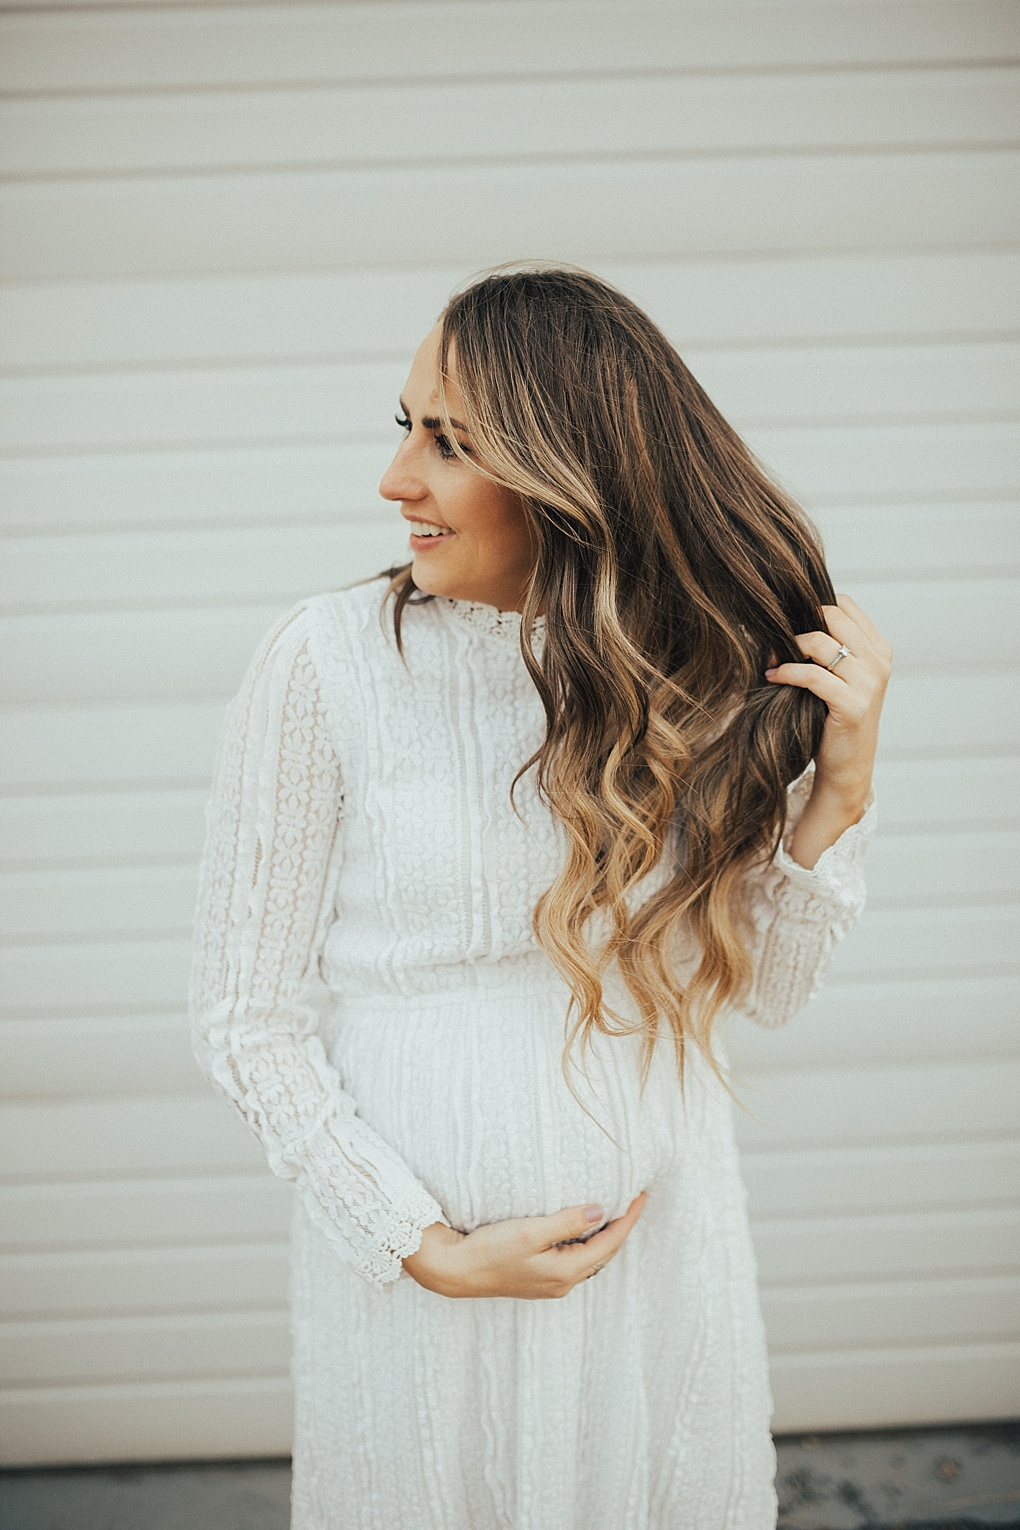 5 Cute Valentines Day Dresses by popular Utah style blogger Dani Marie